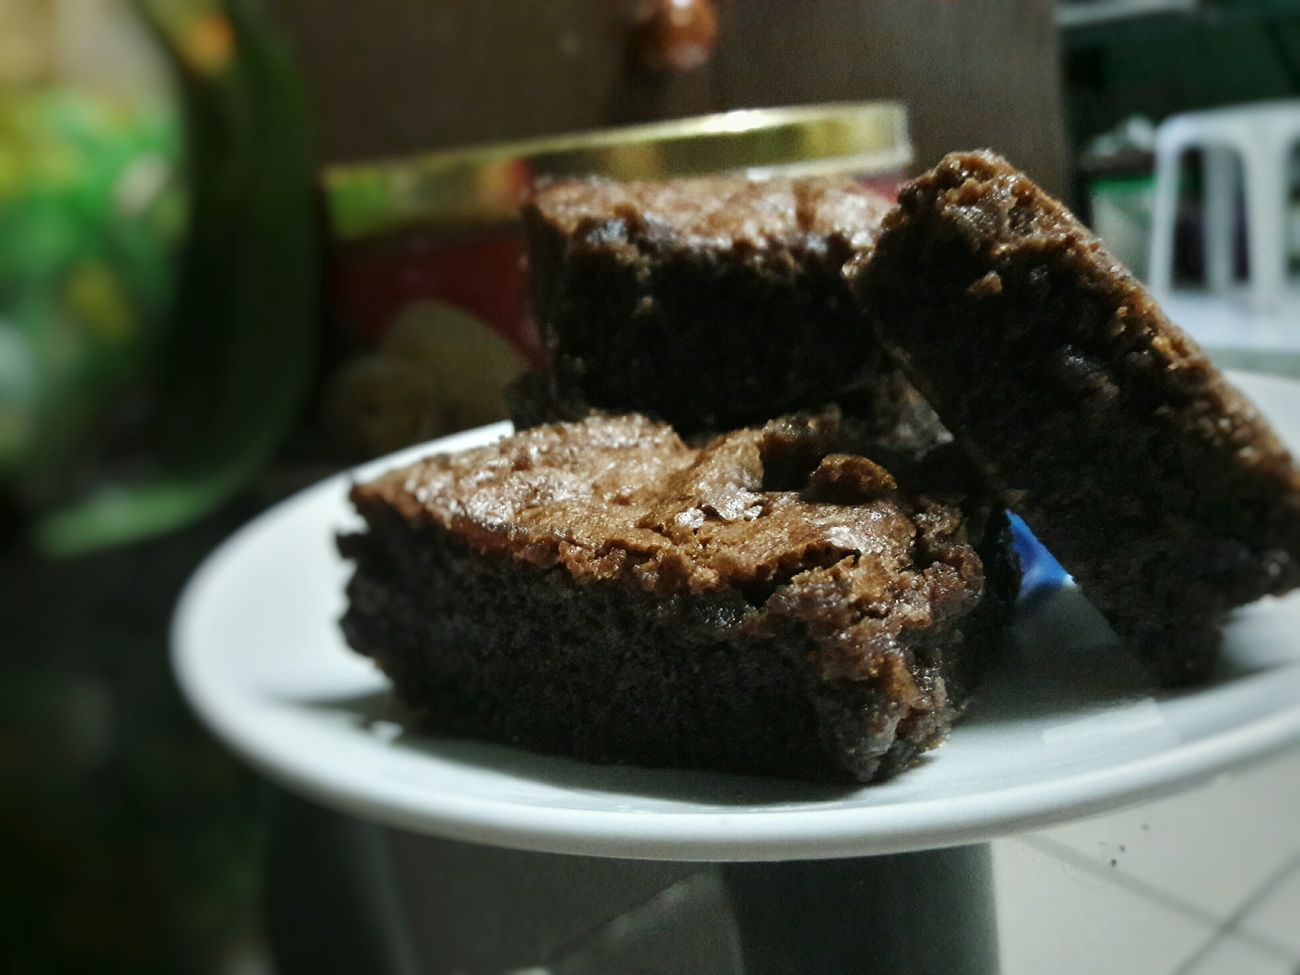 Enjoying Life HomemadeBrownie Sweettooth🍰 Goodfood Eyeemphotography EyeEm Gallery EyeEm Food Photography